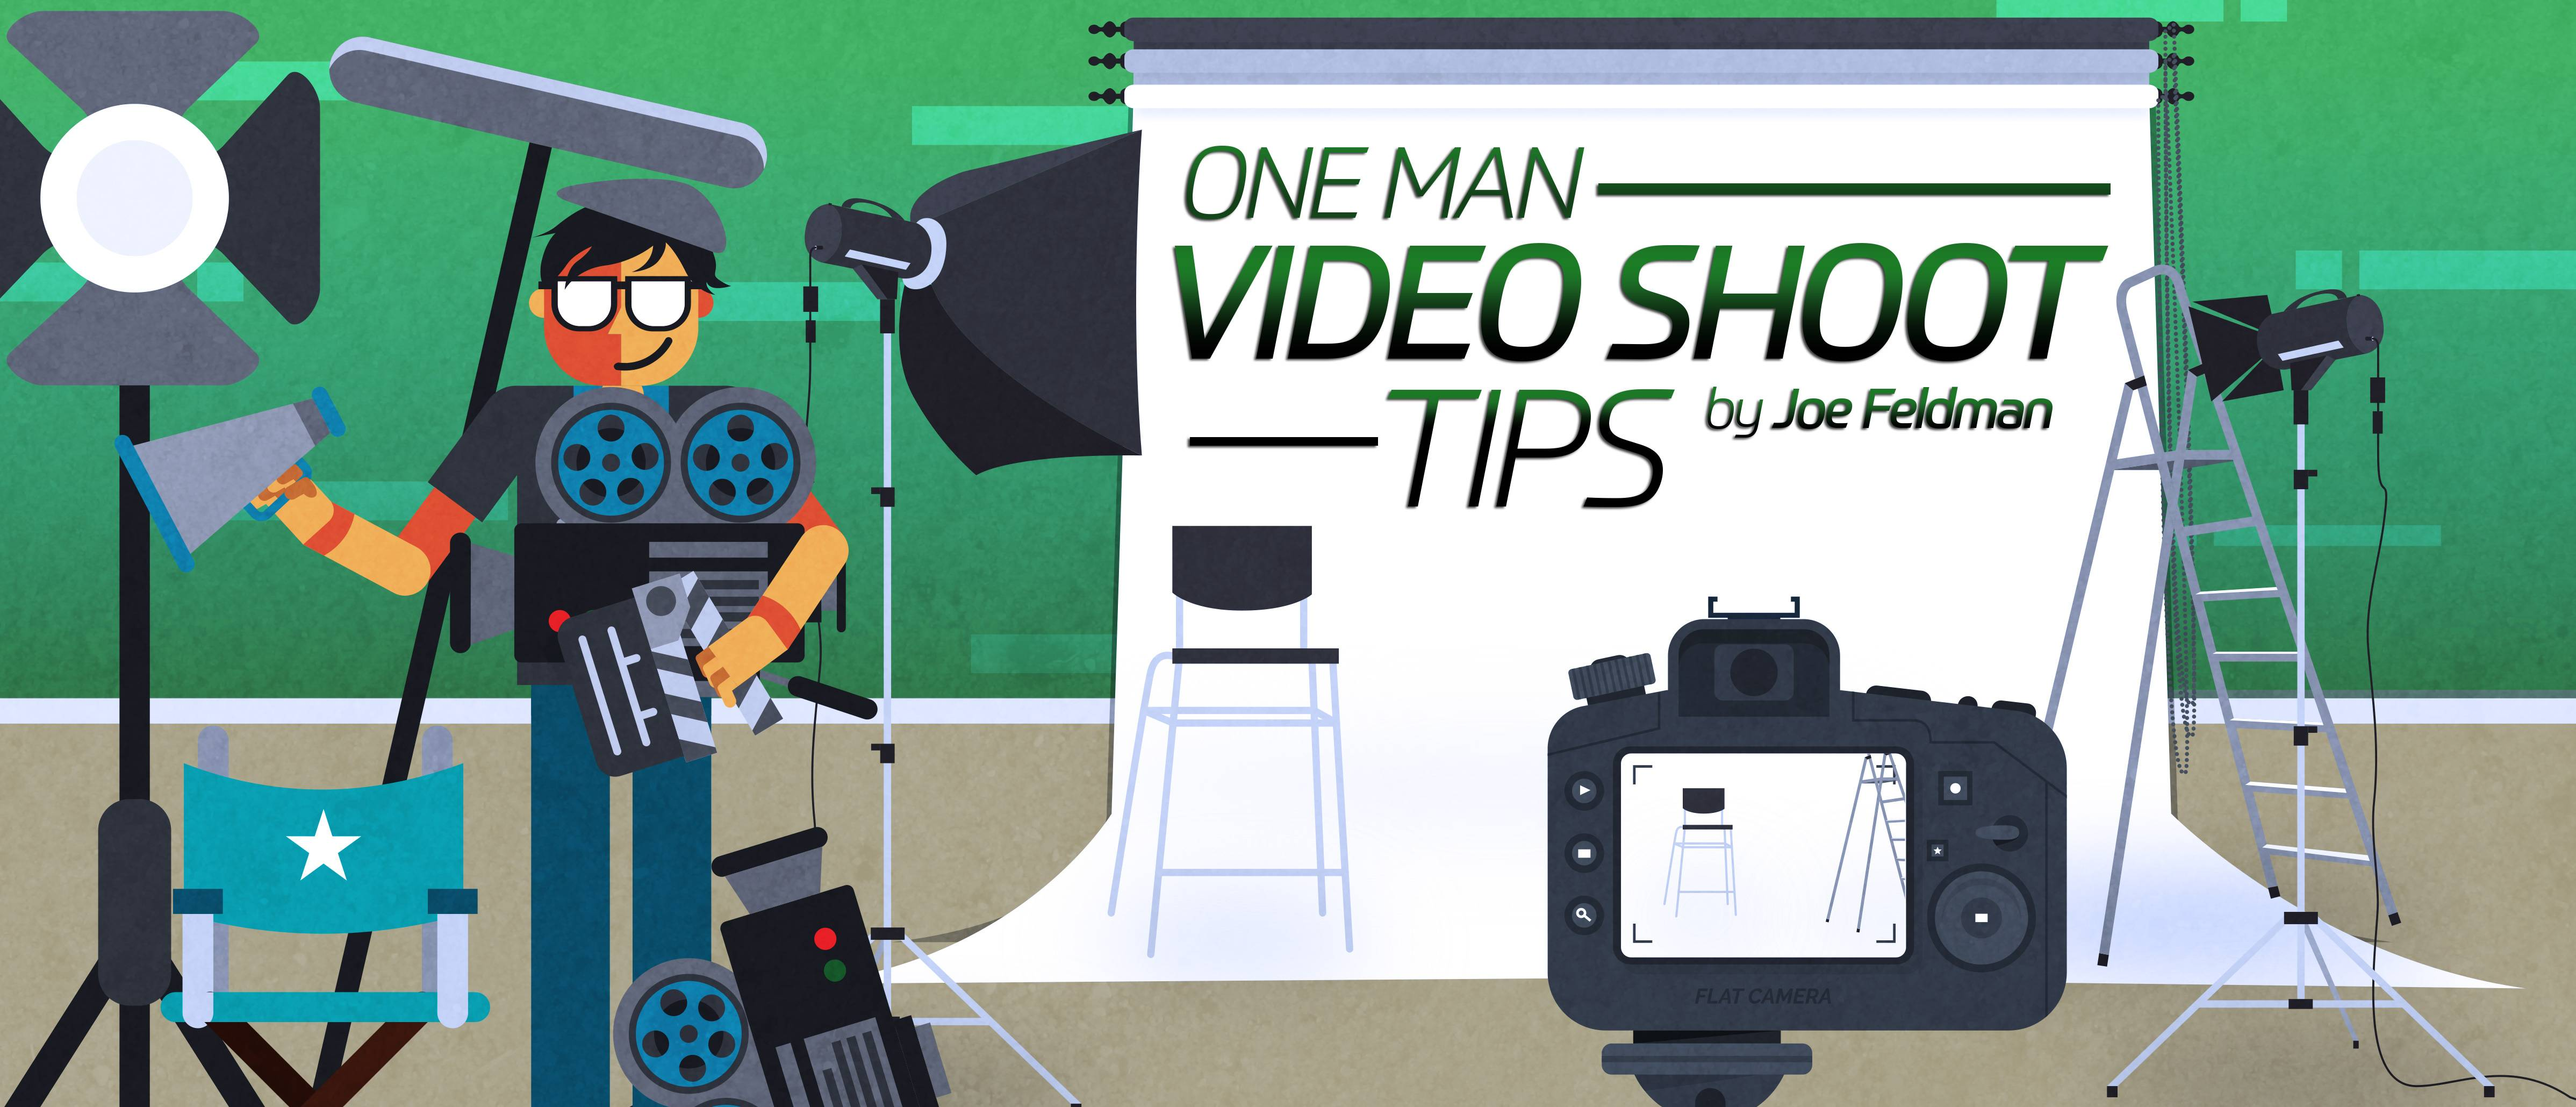 One Man Video Shoot Tips